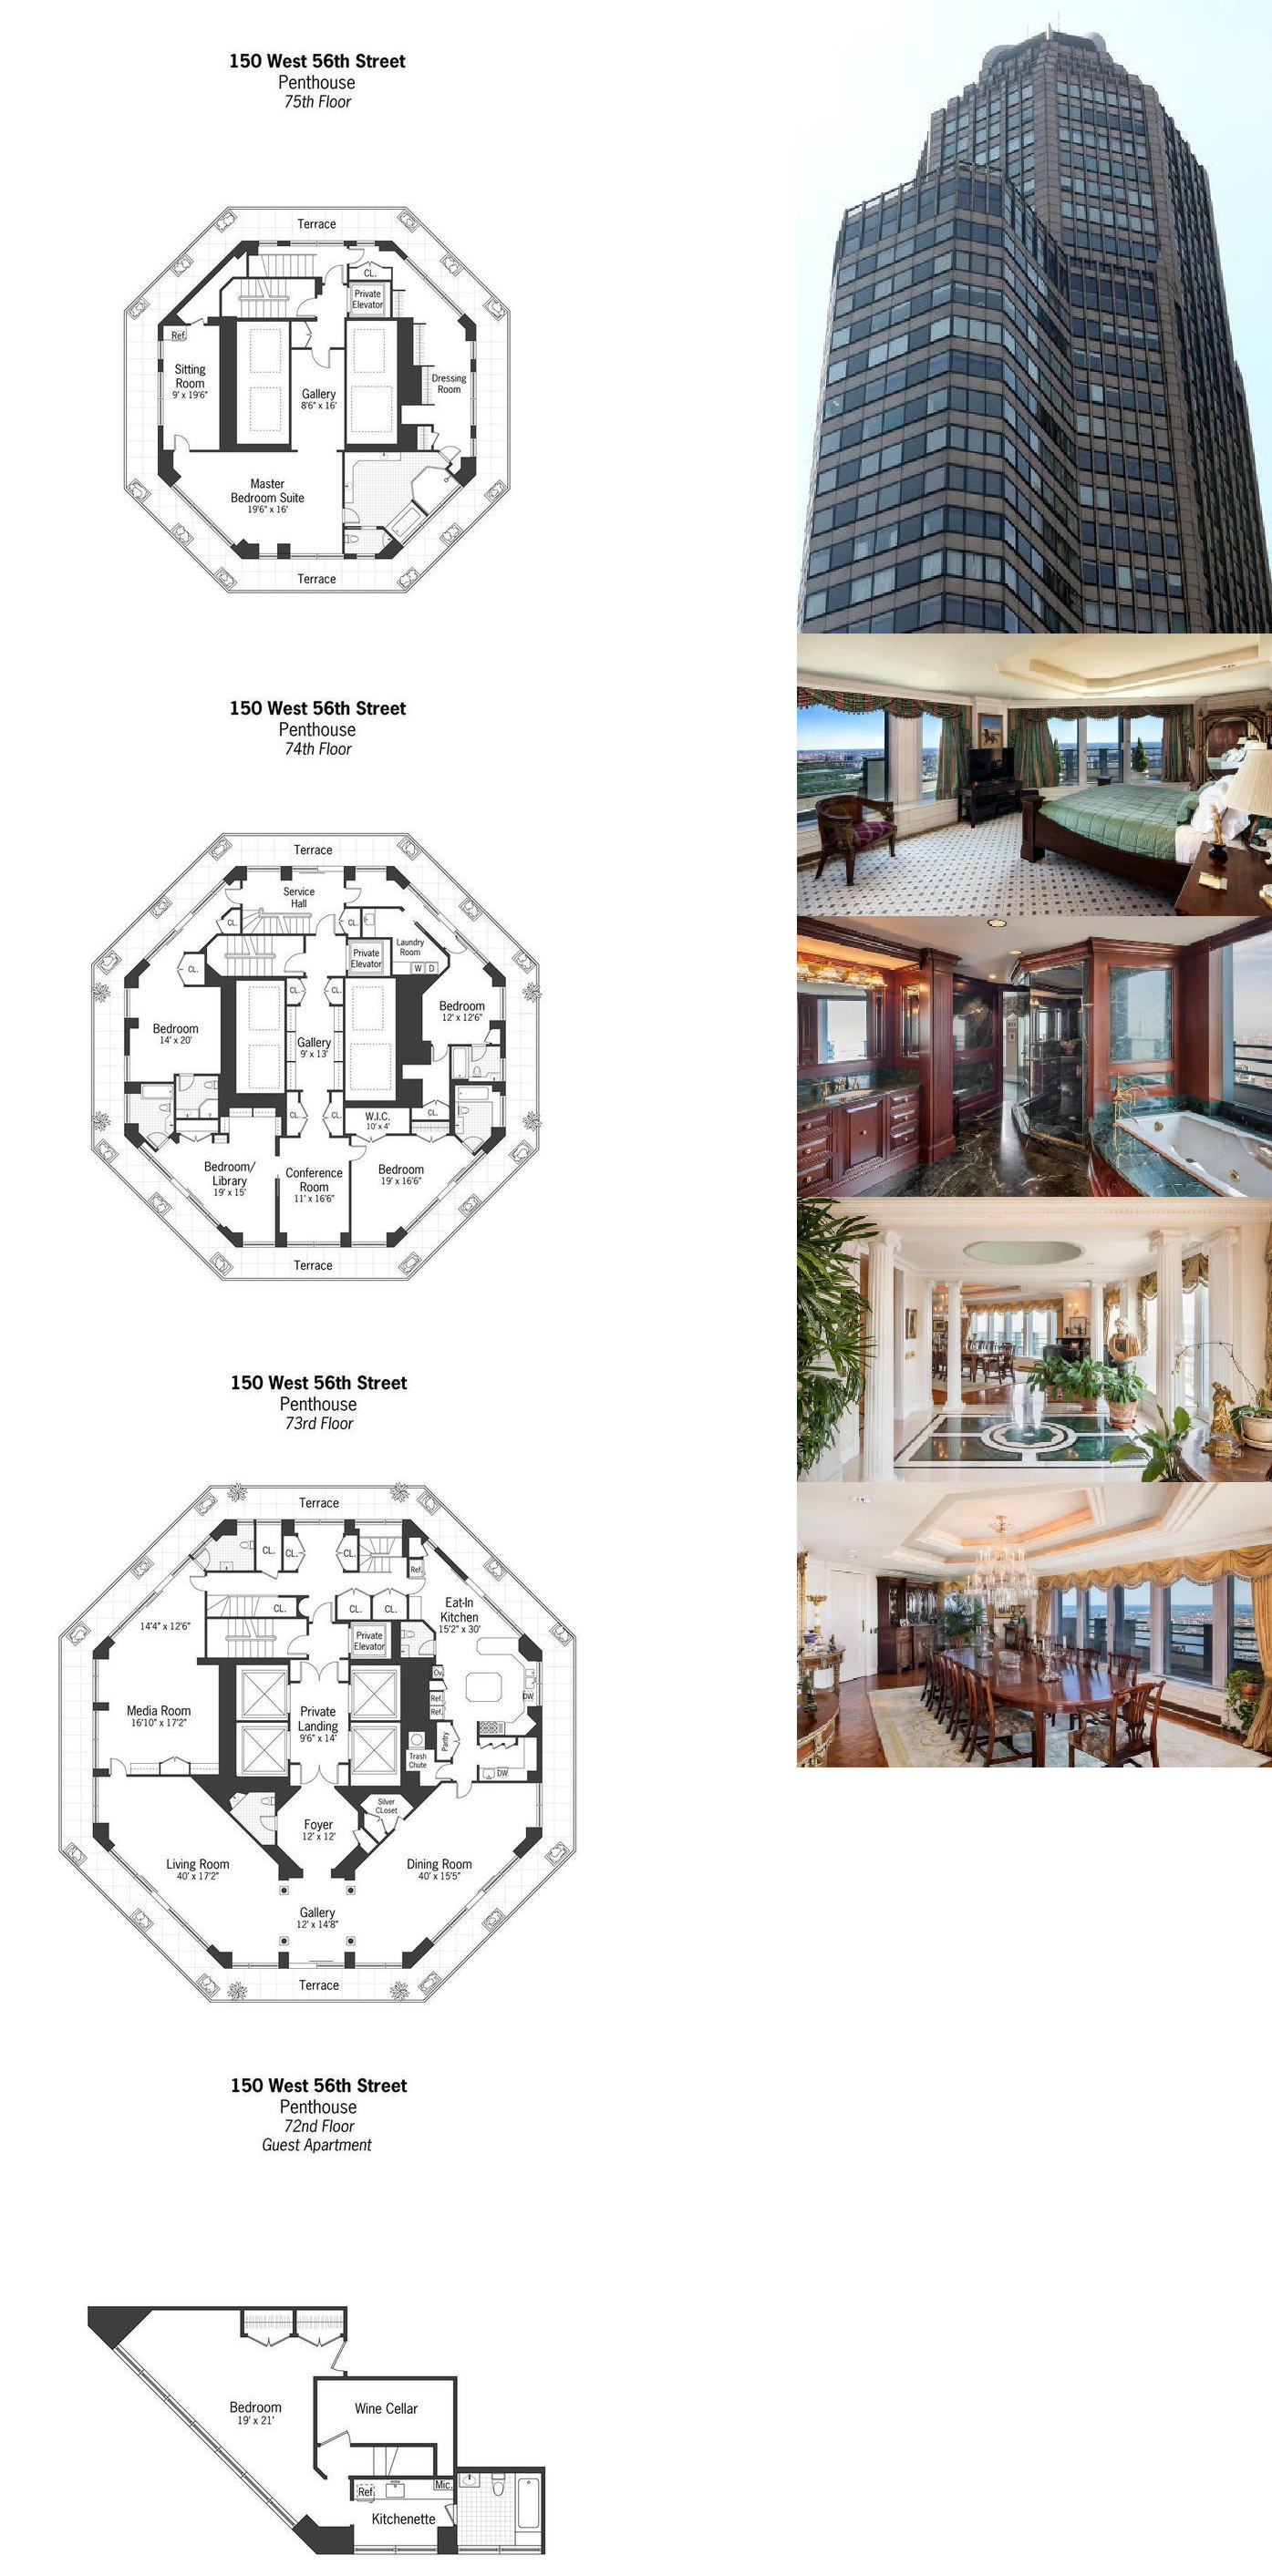 House floor plans dream house design modern interior lofts 100 million city spire penthouse now for sale by owner mega mansions new york apartments